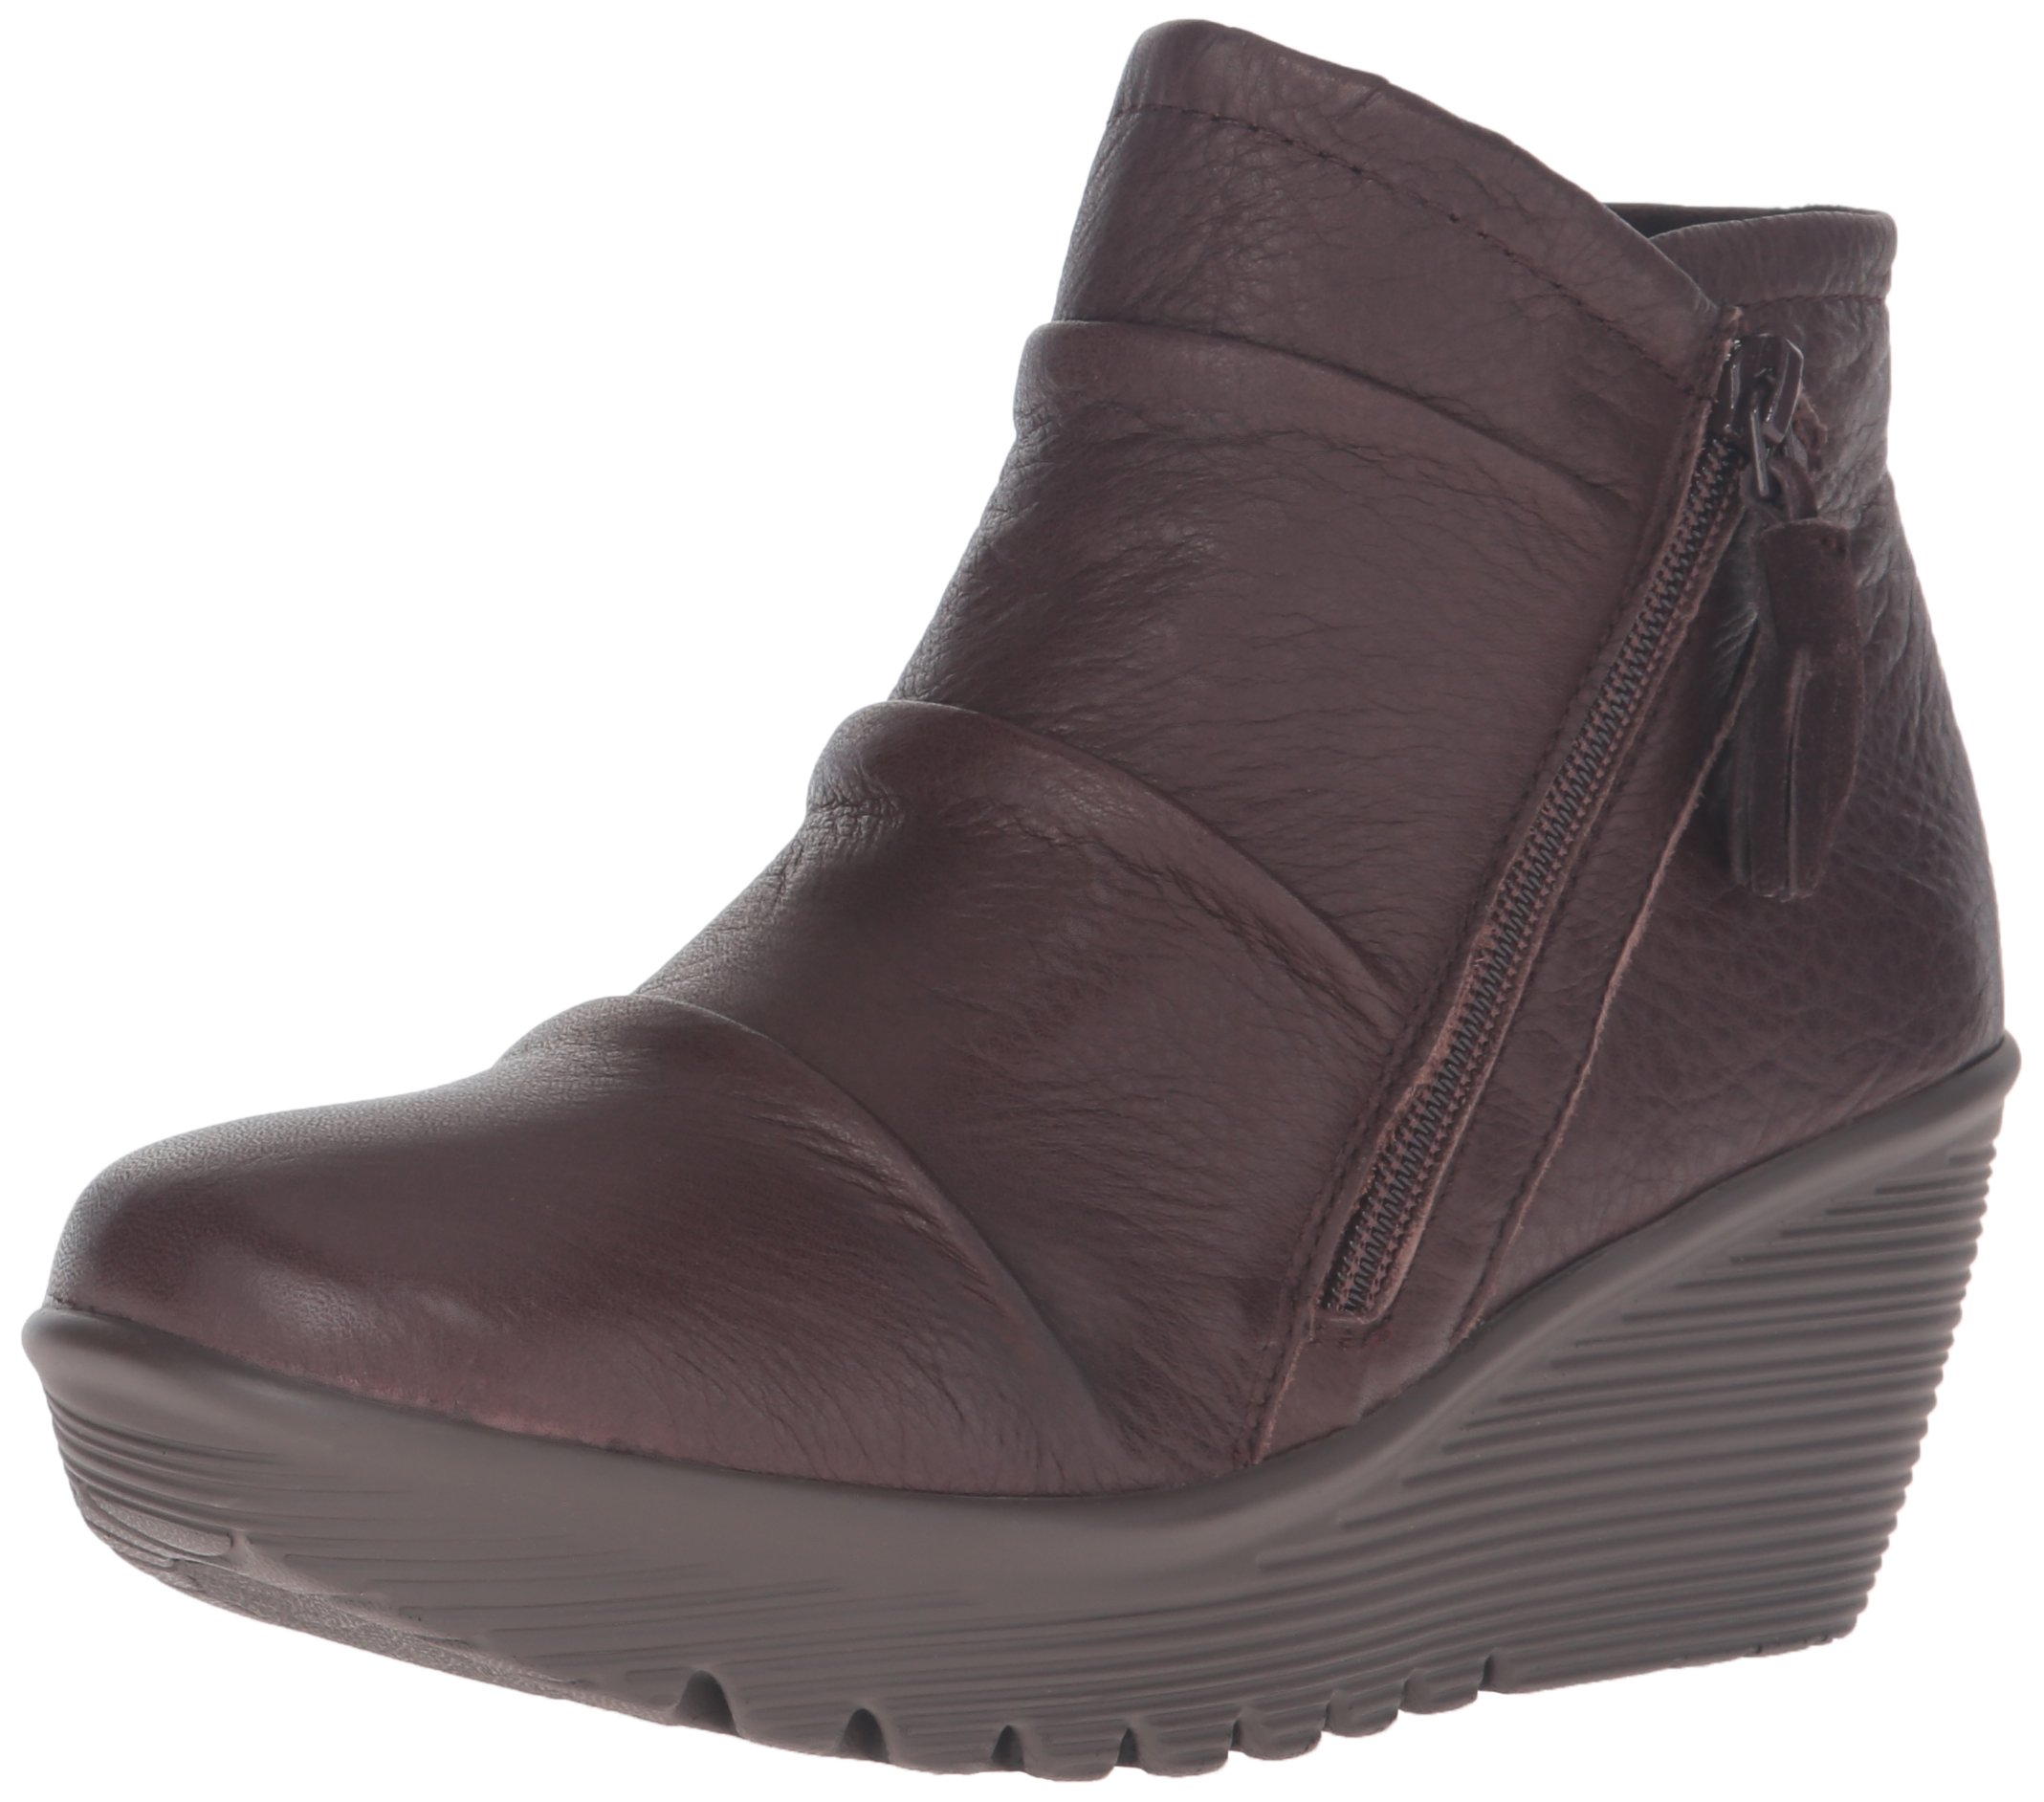 Skechers Women's Parallel-Double Trouble Ankle Bootie,Chocolate,8 M US